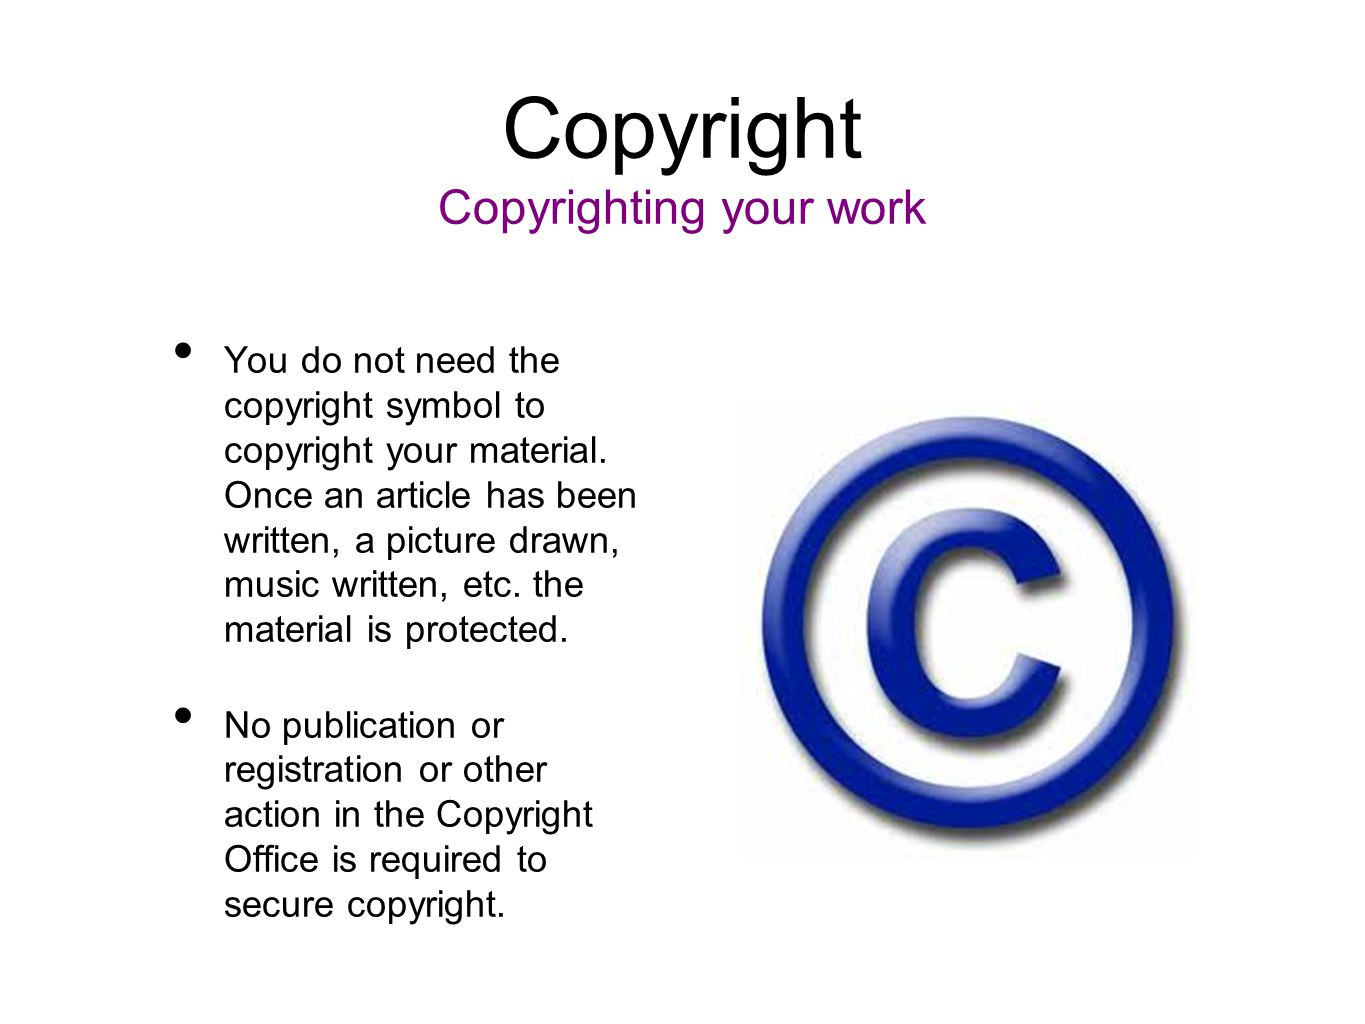 Copyright Copyrighting your work You do not need the copyright symbol to copyright your material. Once an article has been written, a picture drawn, m